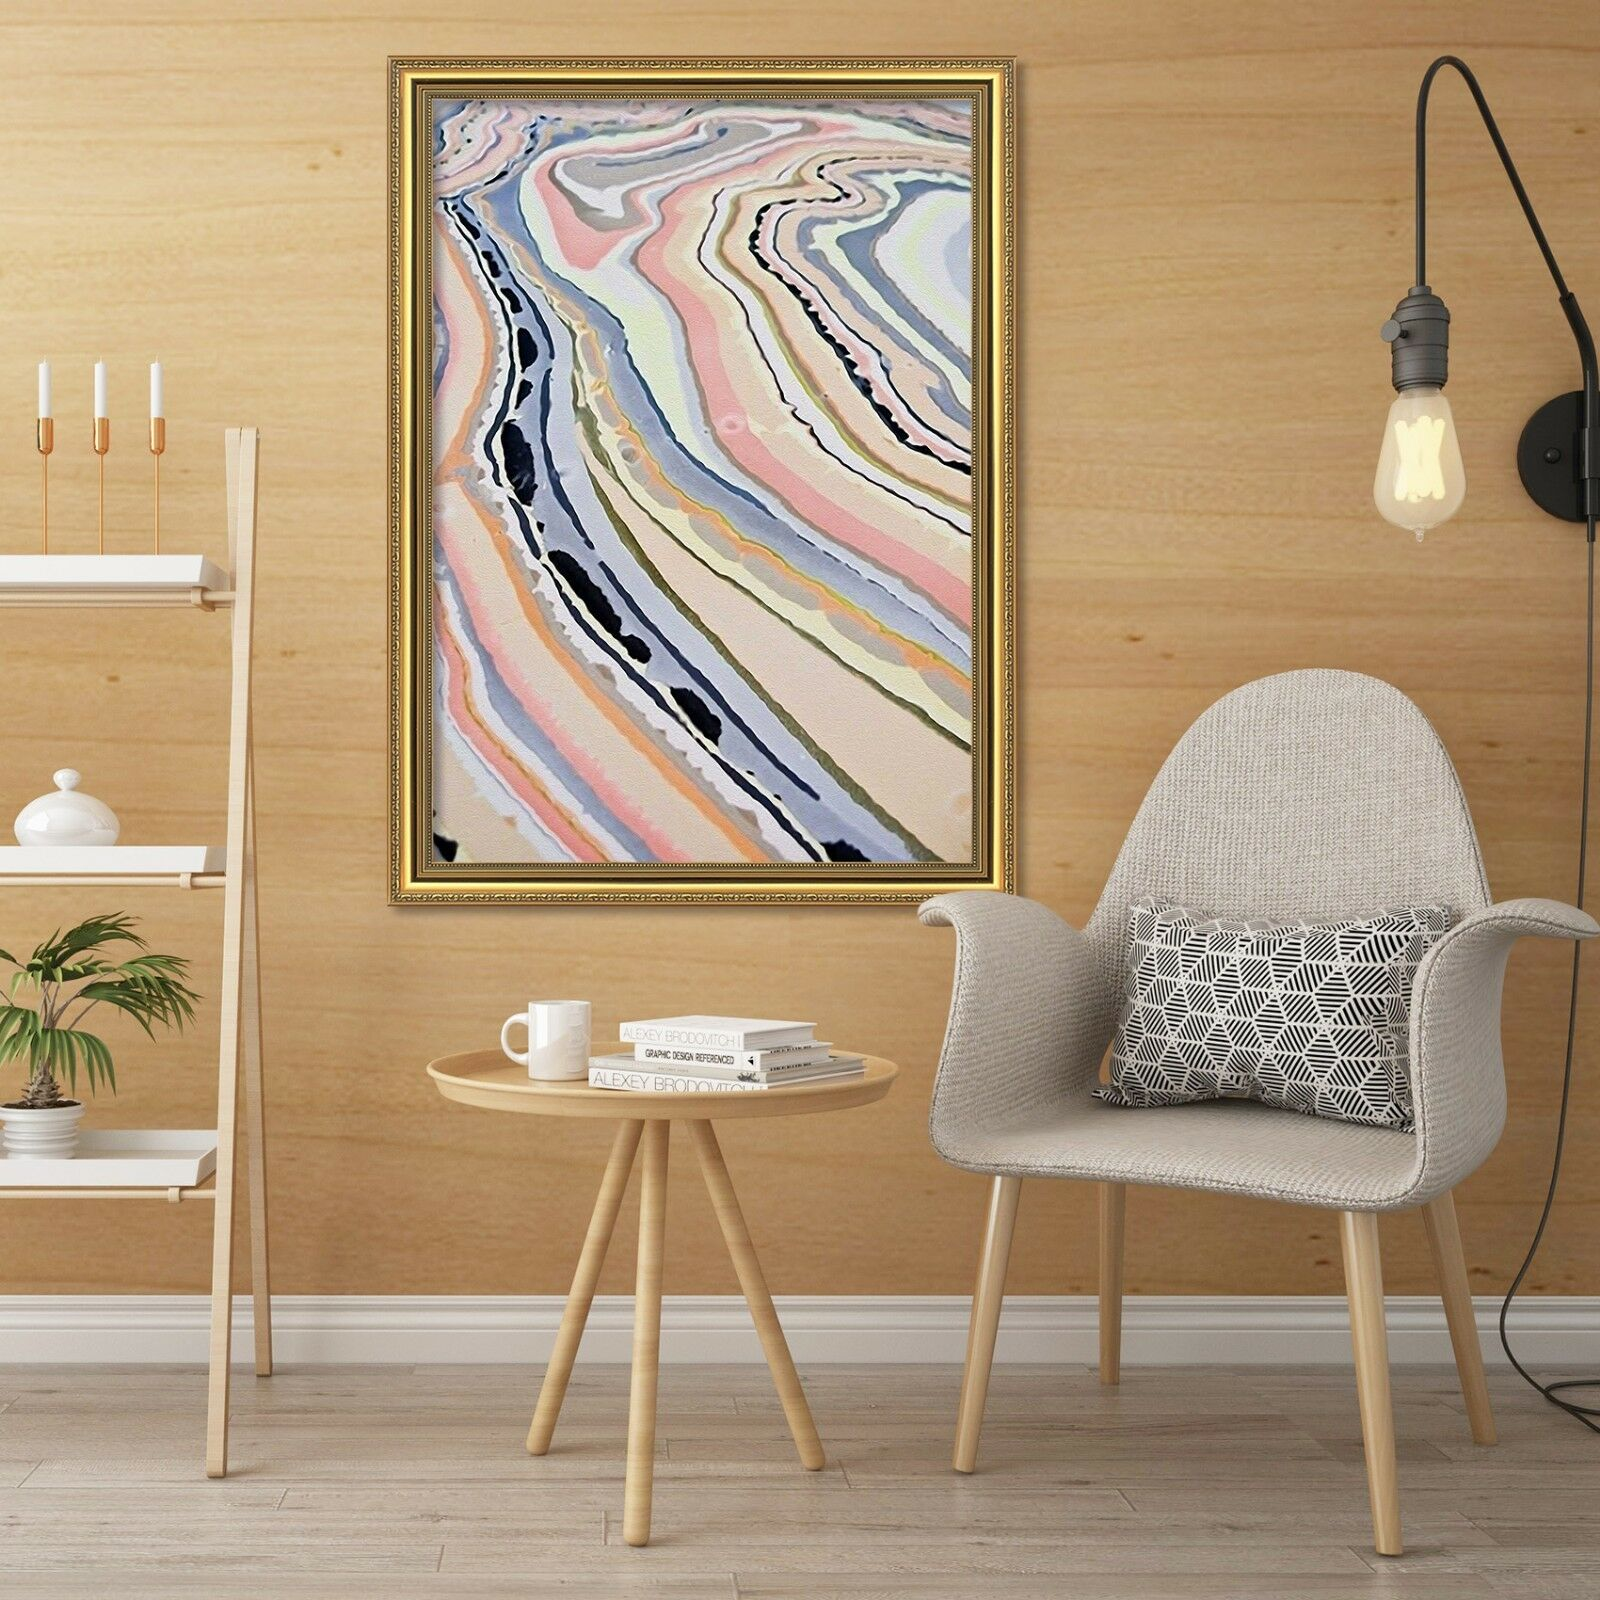 3D Abstract Texture 2 Framed Poster Home Decor Print Painting Art AJ WALLPAPER